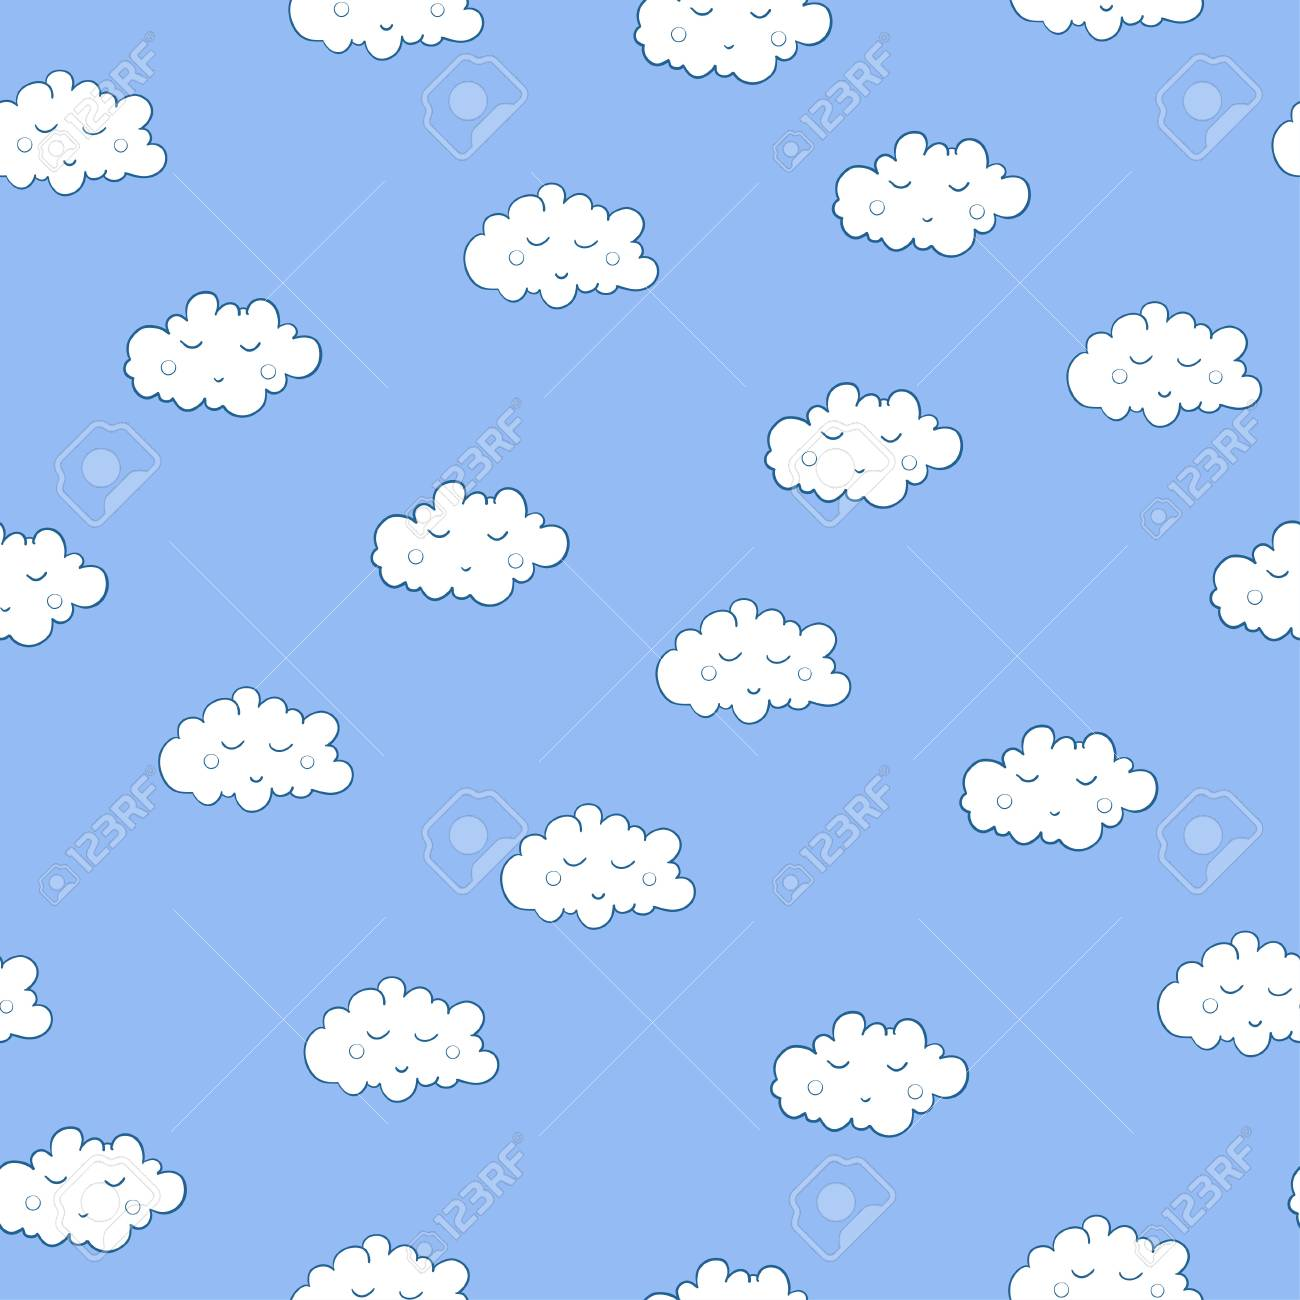 Unusual Seamless Pattern With Cute Sleeping Clouds Good Night Royalty Free Cliparts Vectors And Stock Illustration Image 103227074